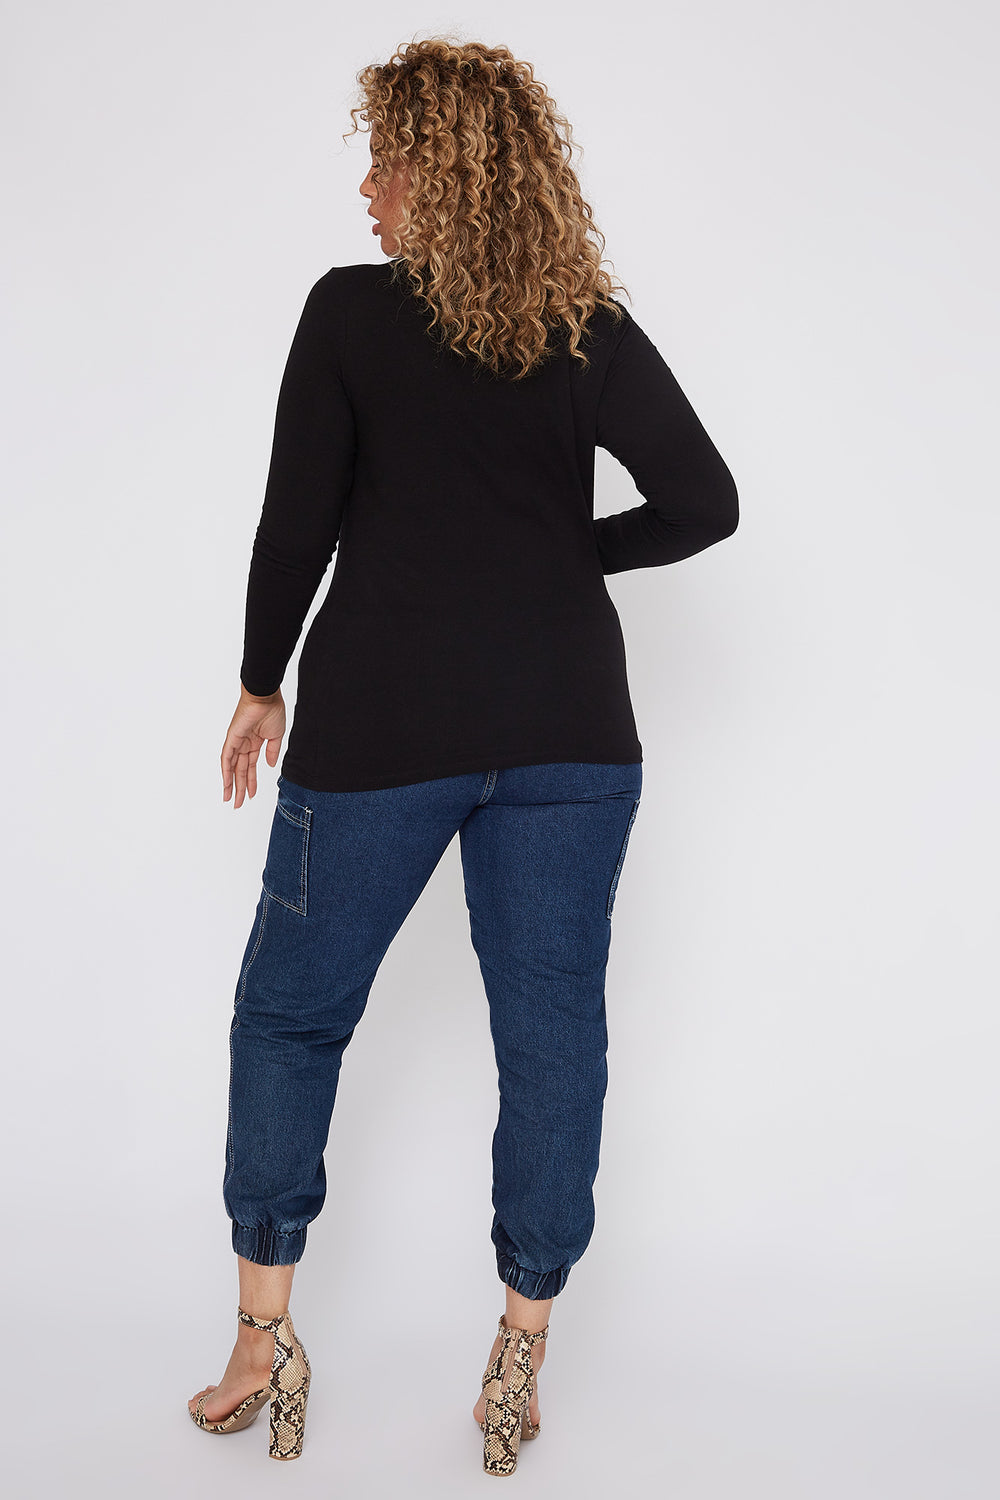 Plus Size Basic V-Neck Long Sleeve Black